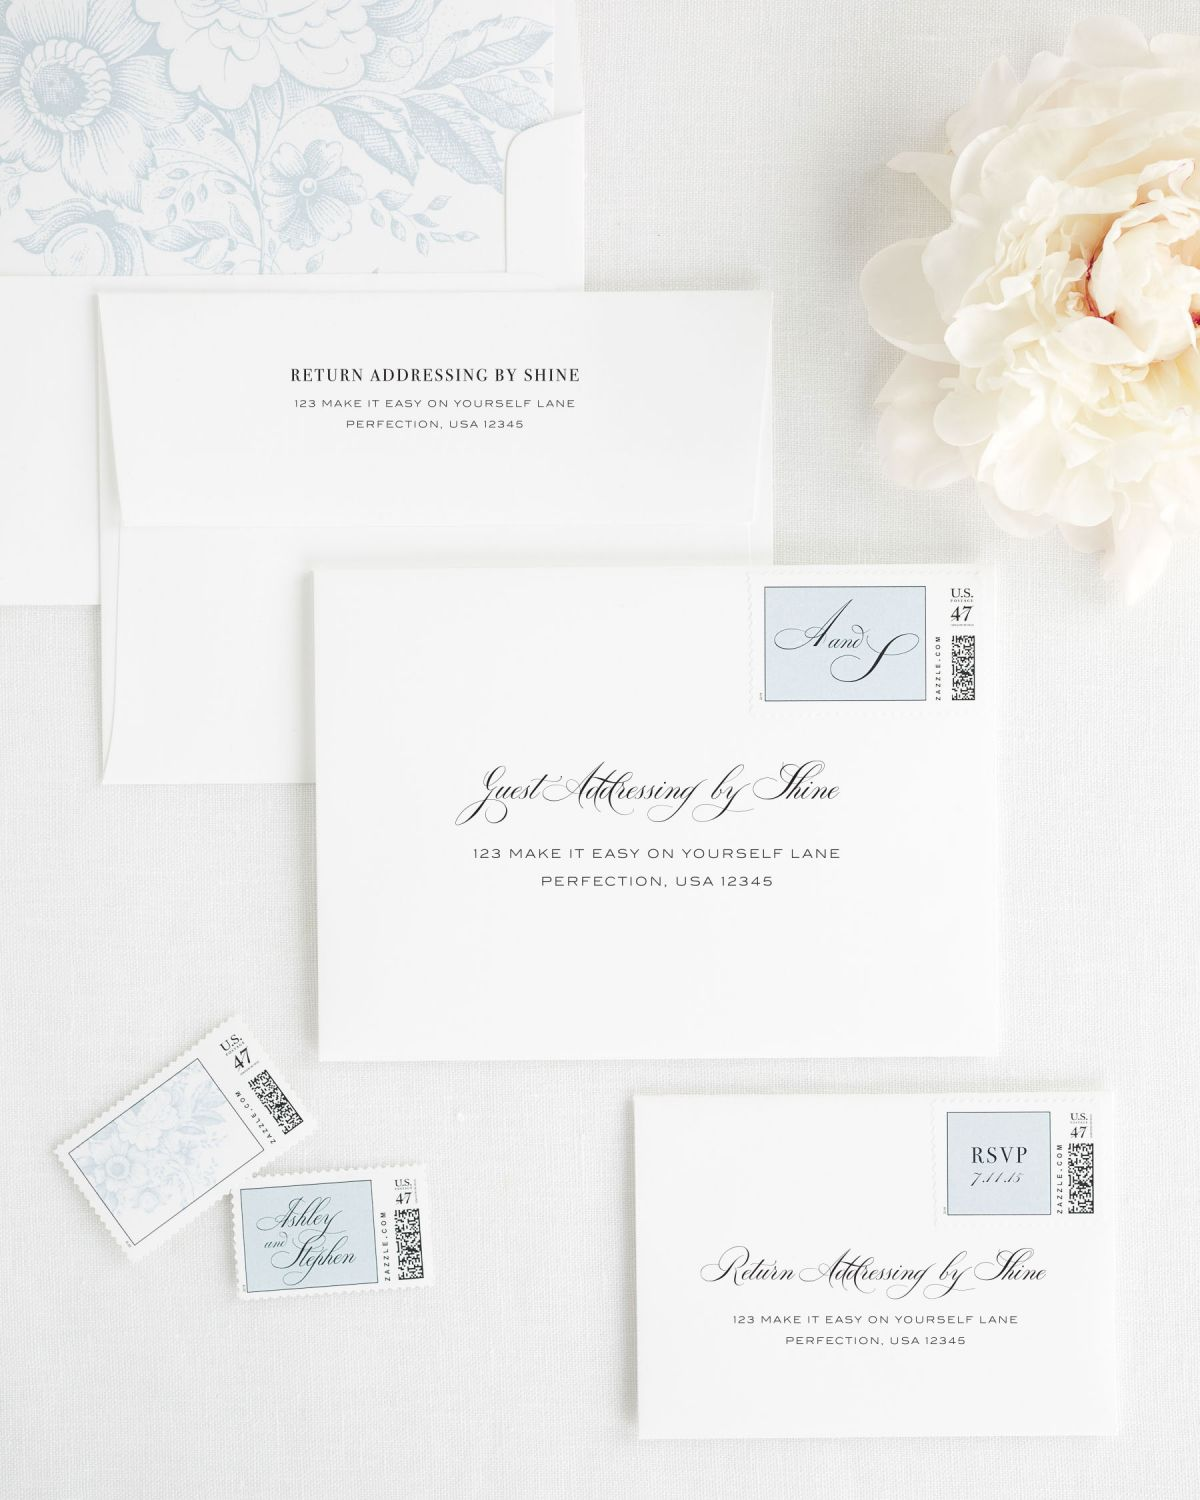 Wedding Invitation Envelopes with Guest Addressing and Custom Stamps